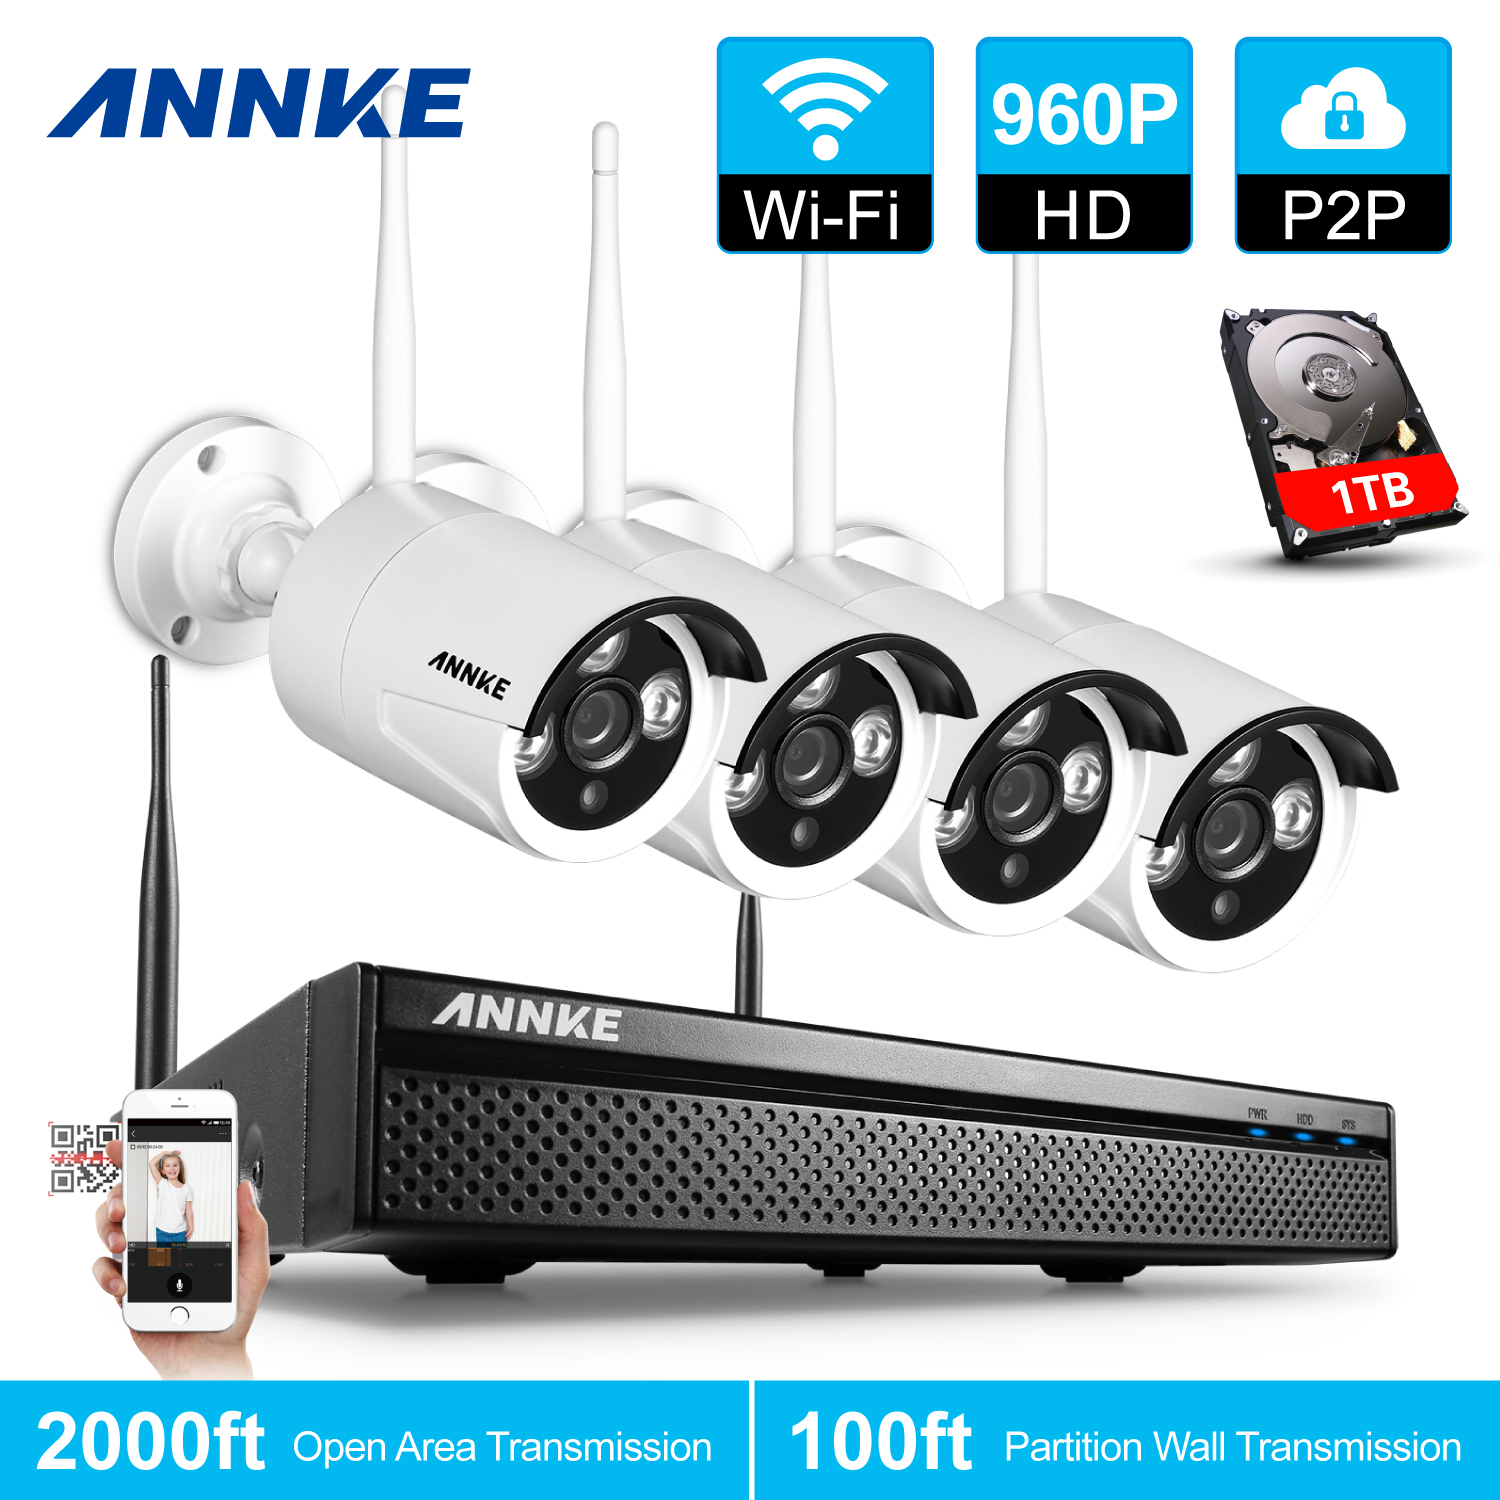 ANNKE 960P HD 4 Cameras 4CH Wireless Security System DVR 1.3MP Bullet Cam Surveillence Kit With 1TB Hard Drive... by AU-441LA1-34VA